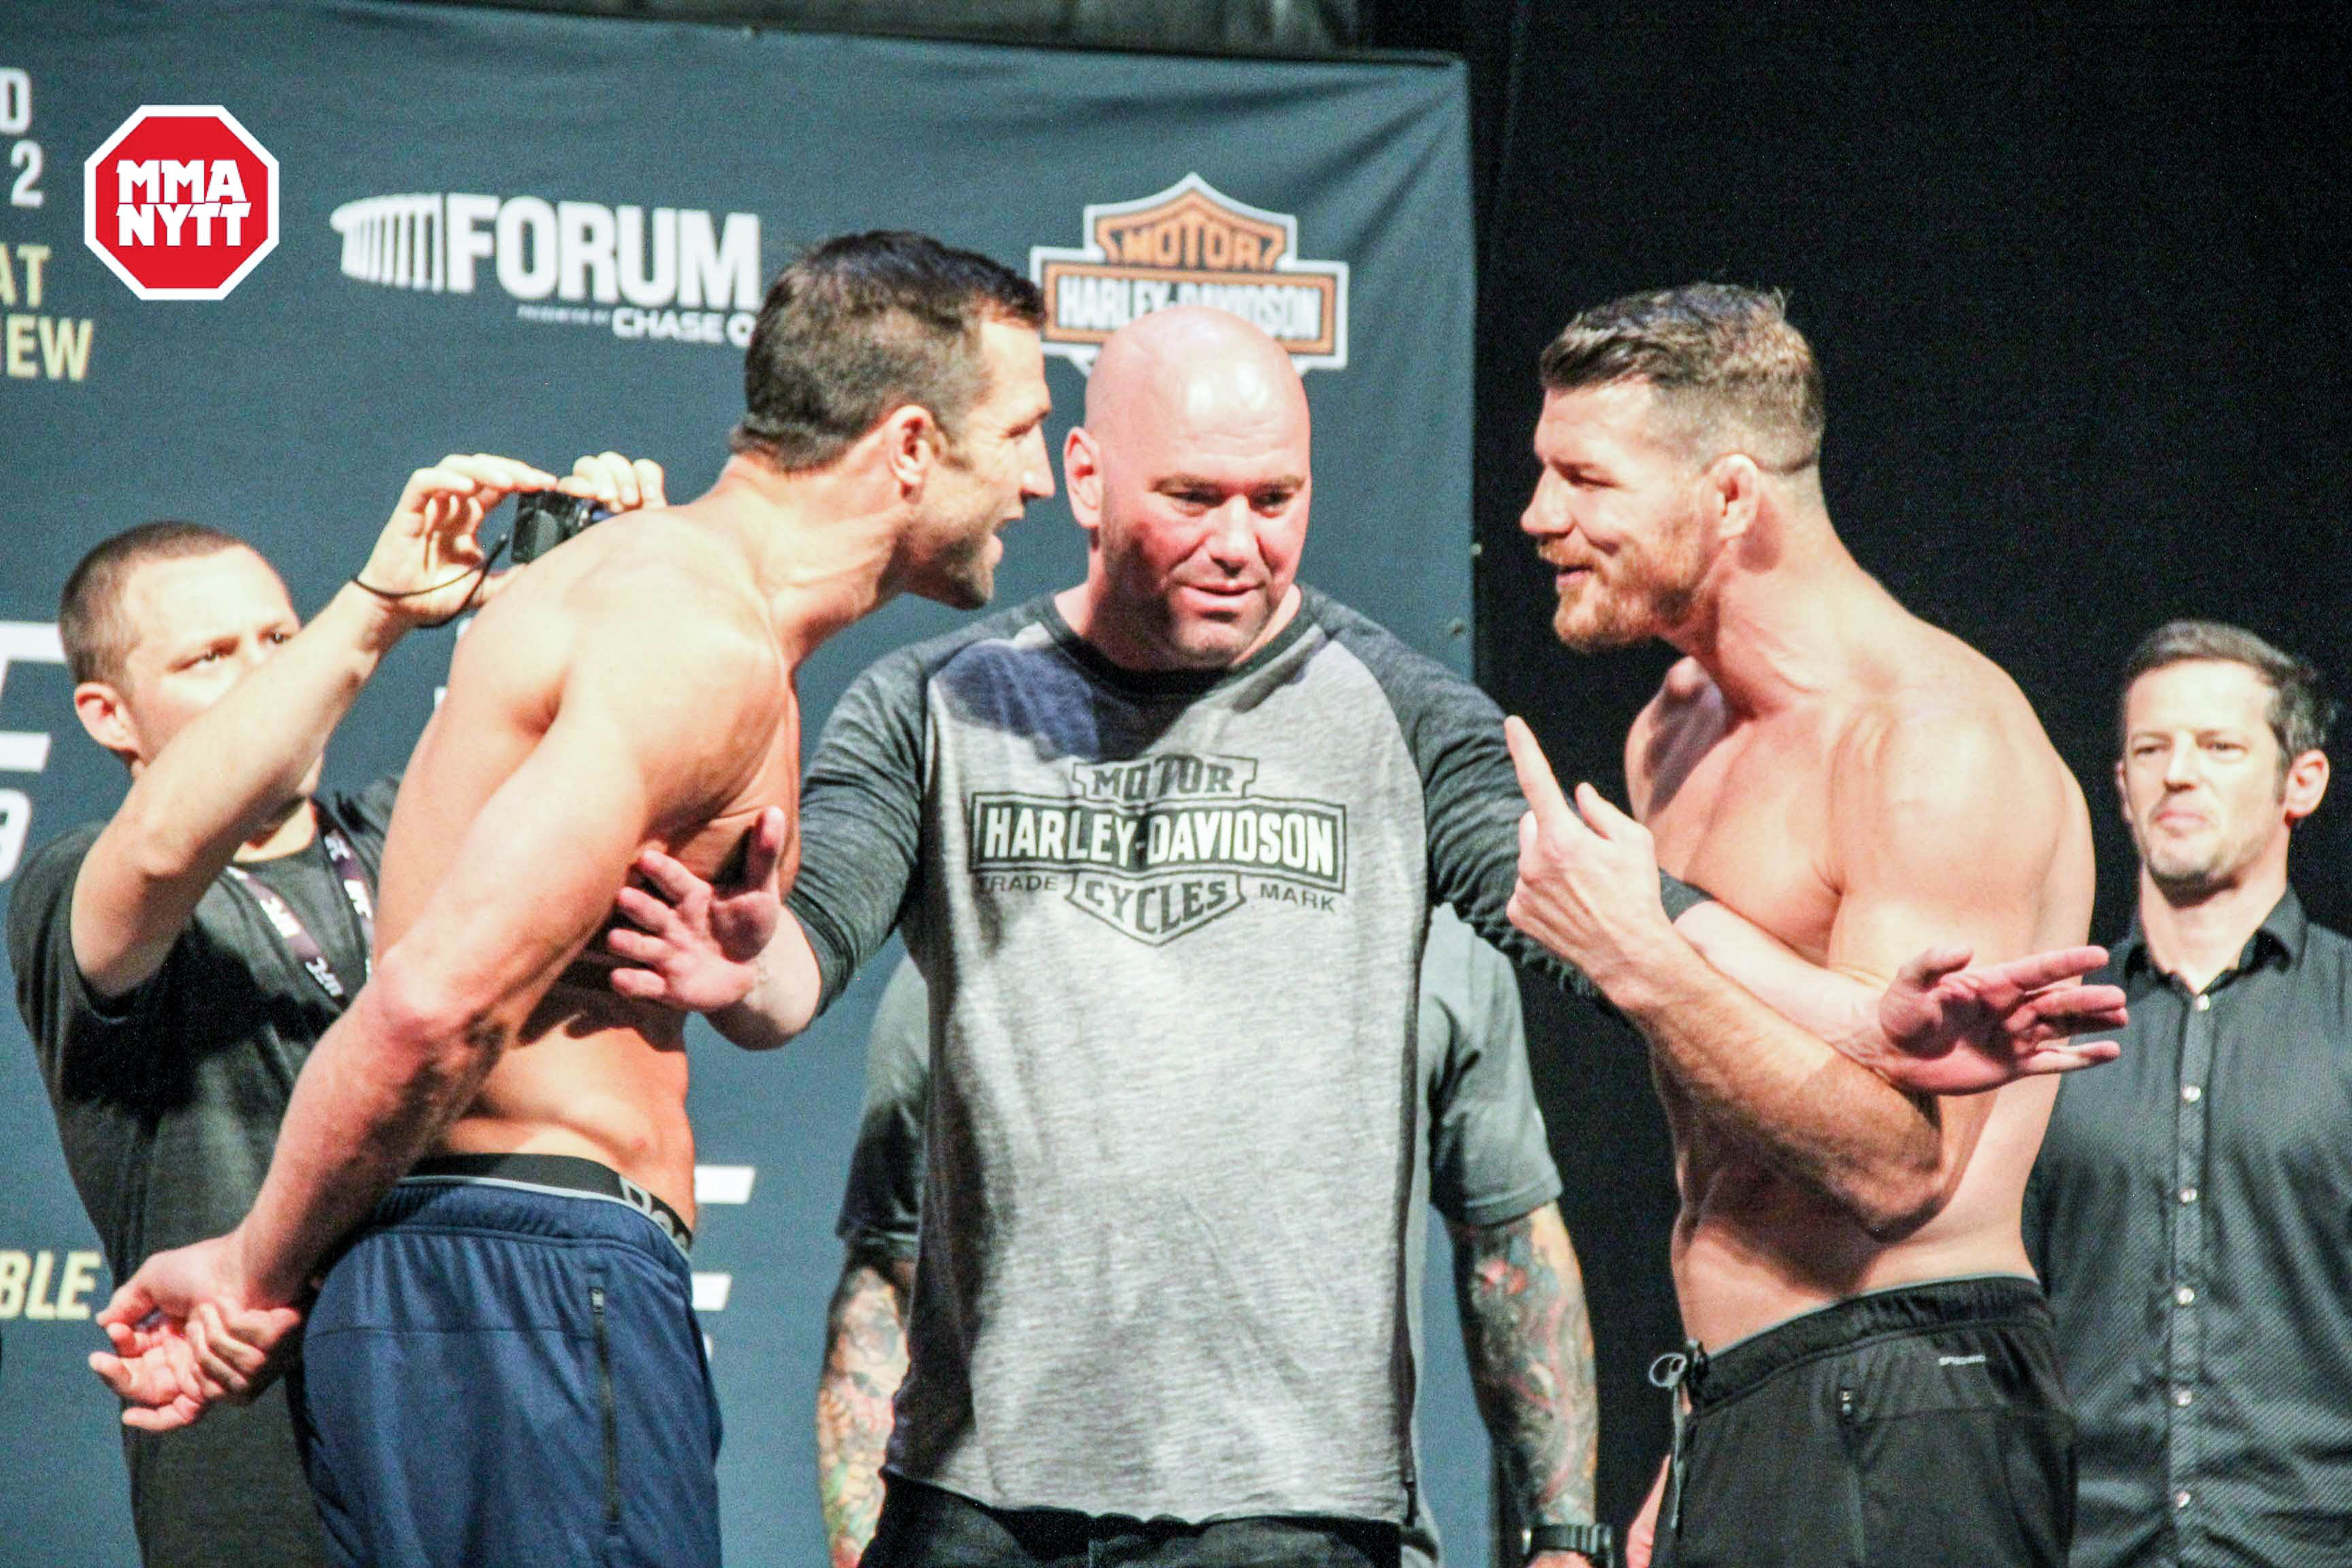 Rockhold vs. Bisping 2 Photo MMANytt.se